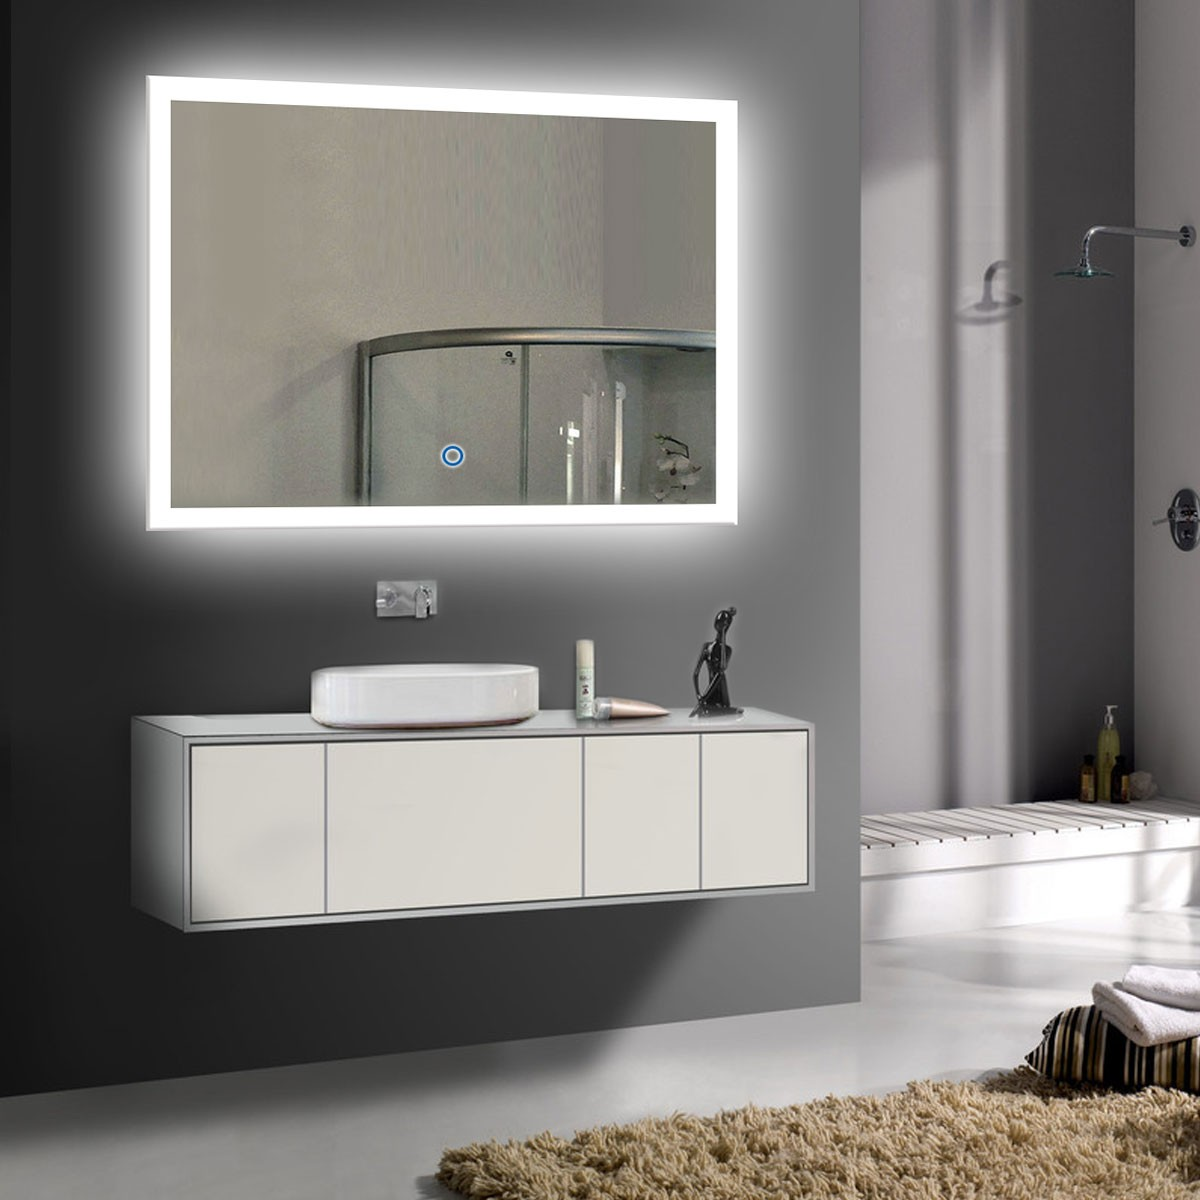 28 x 36 po miroir led horizontal argent de salle de bains. Black Bedroom Furniture Sets. Home Design Ideas